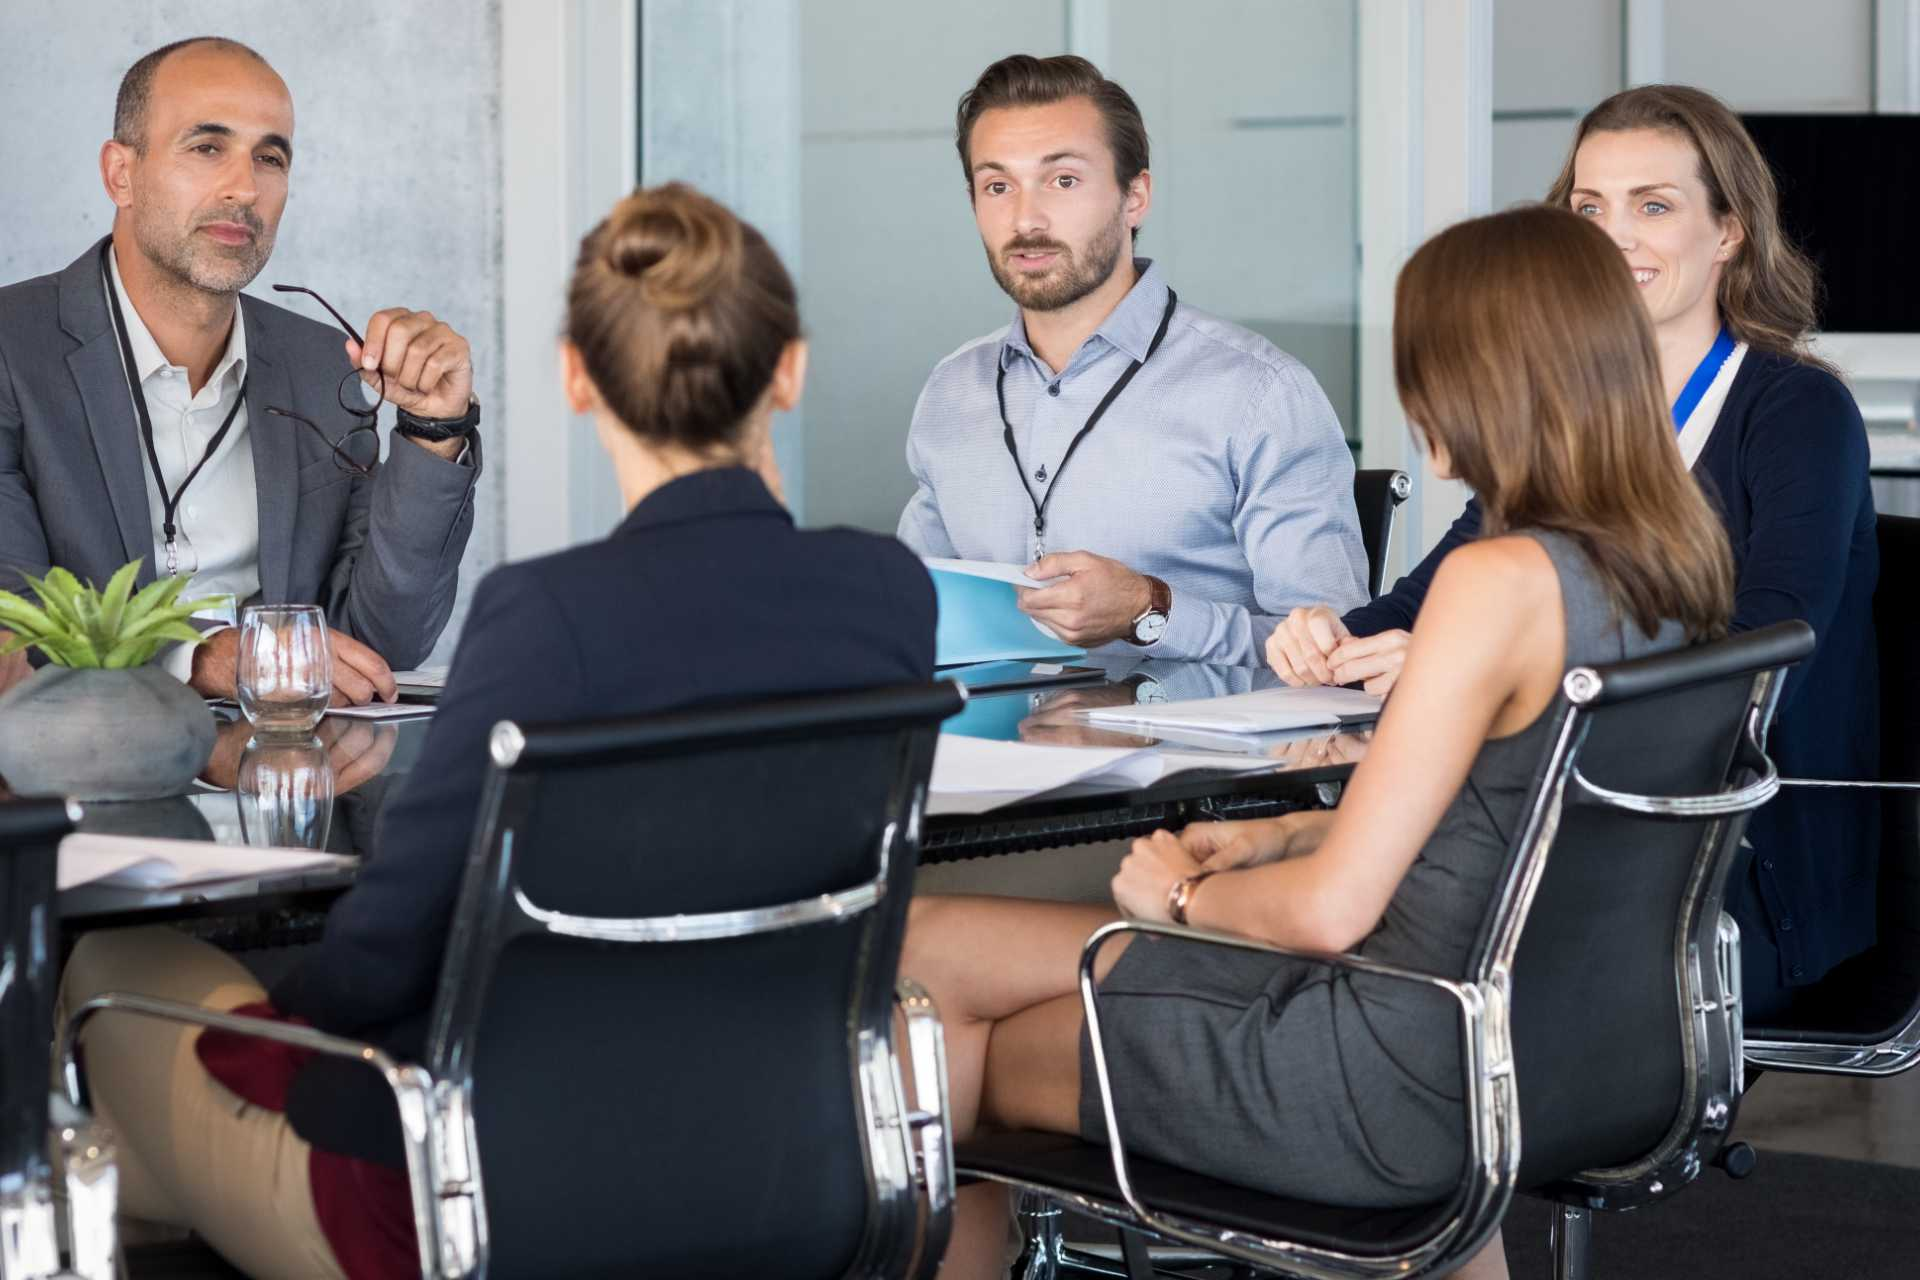 Group meets at office table